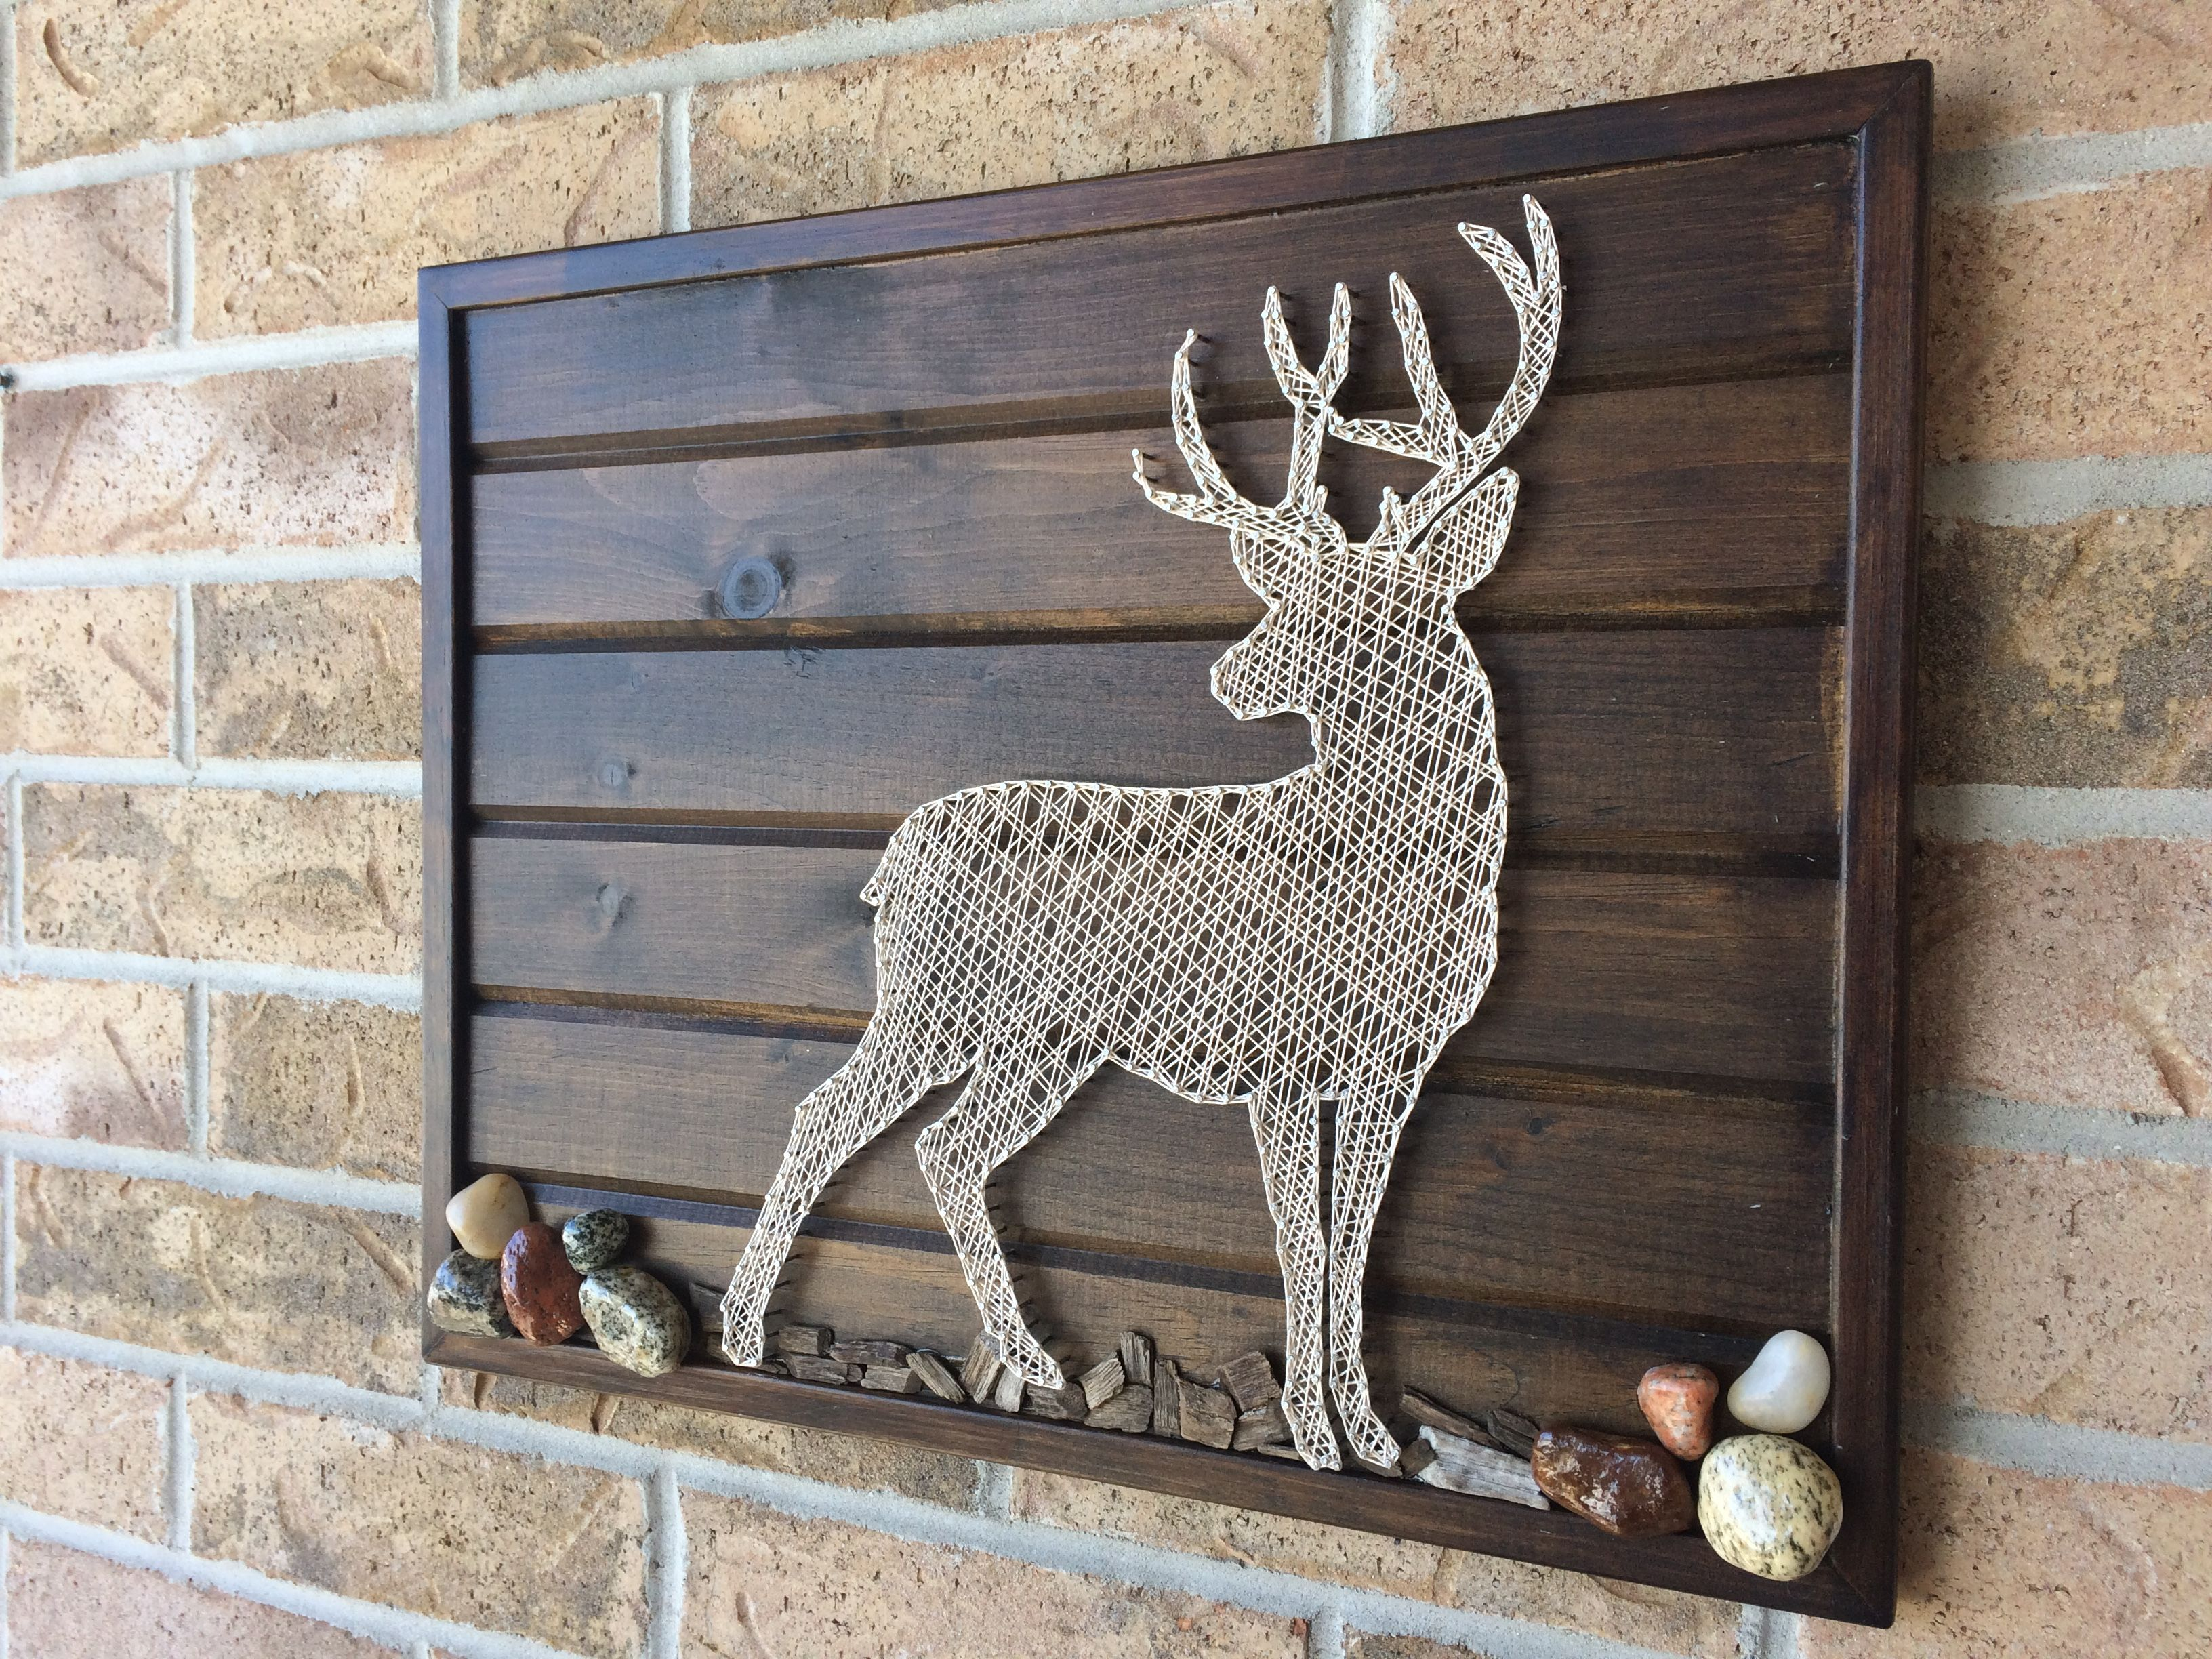 String Art Buck - Rocks and mulch on tounge and groove wood with ...